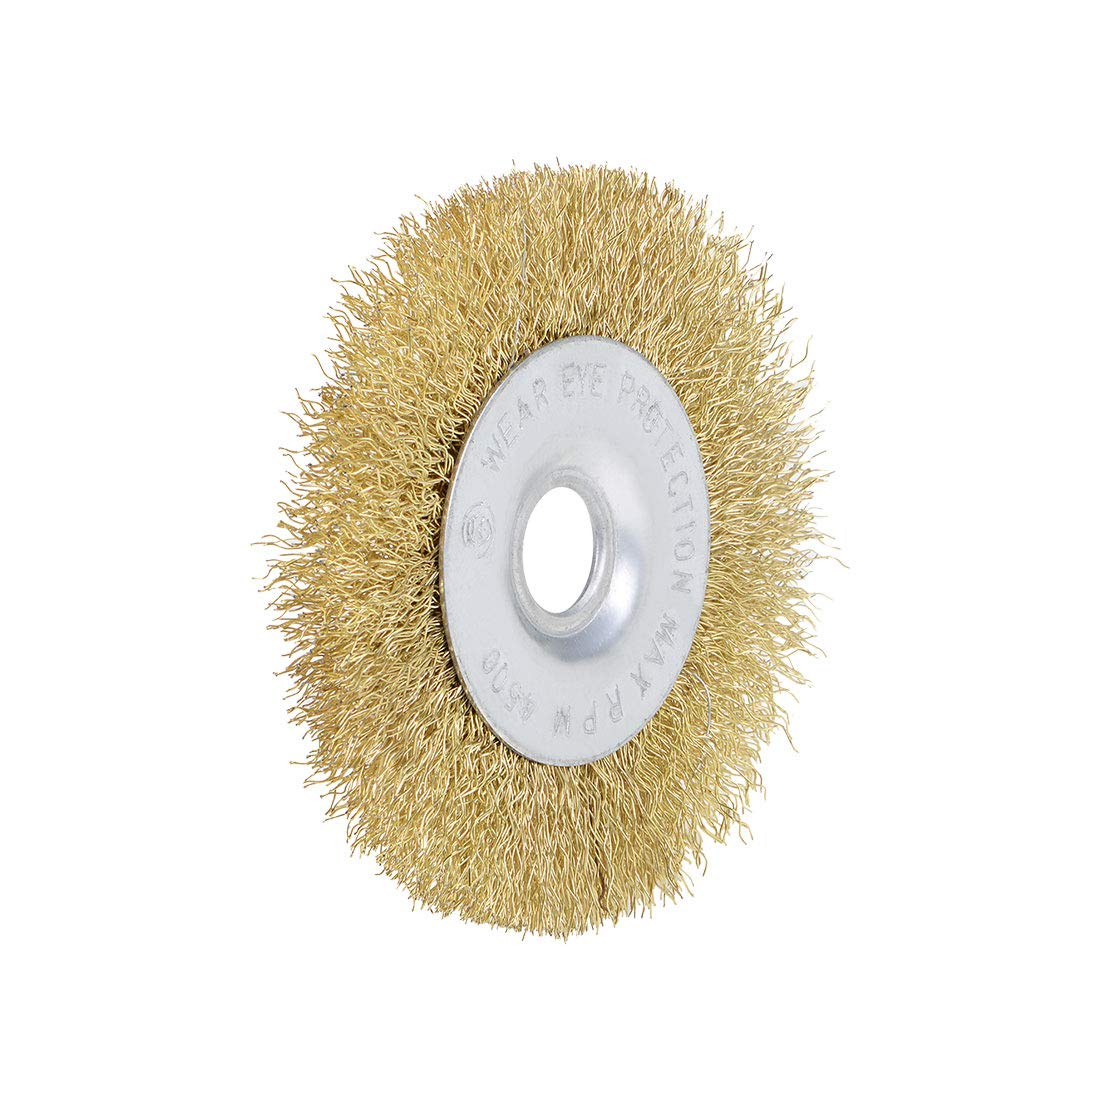 uxcell 4-Inch Wire Wheel Brush Bench Brass Plated Crimped Steel with 5//8-Inch Arbor Hole 2 Pcs